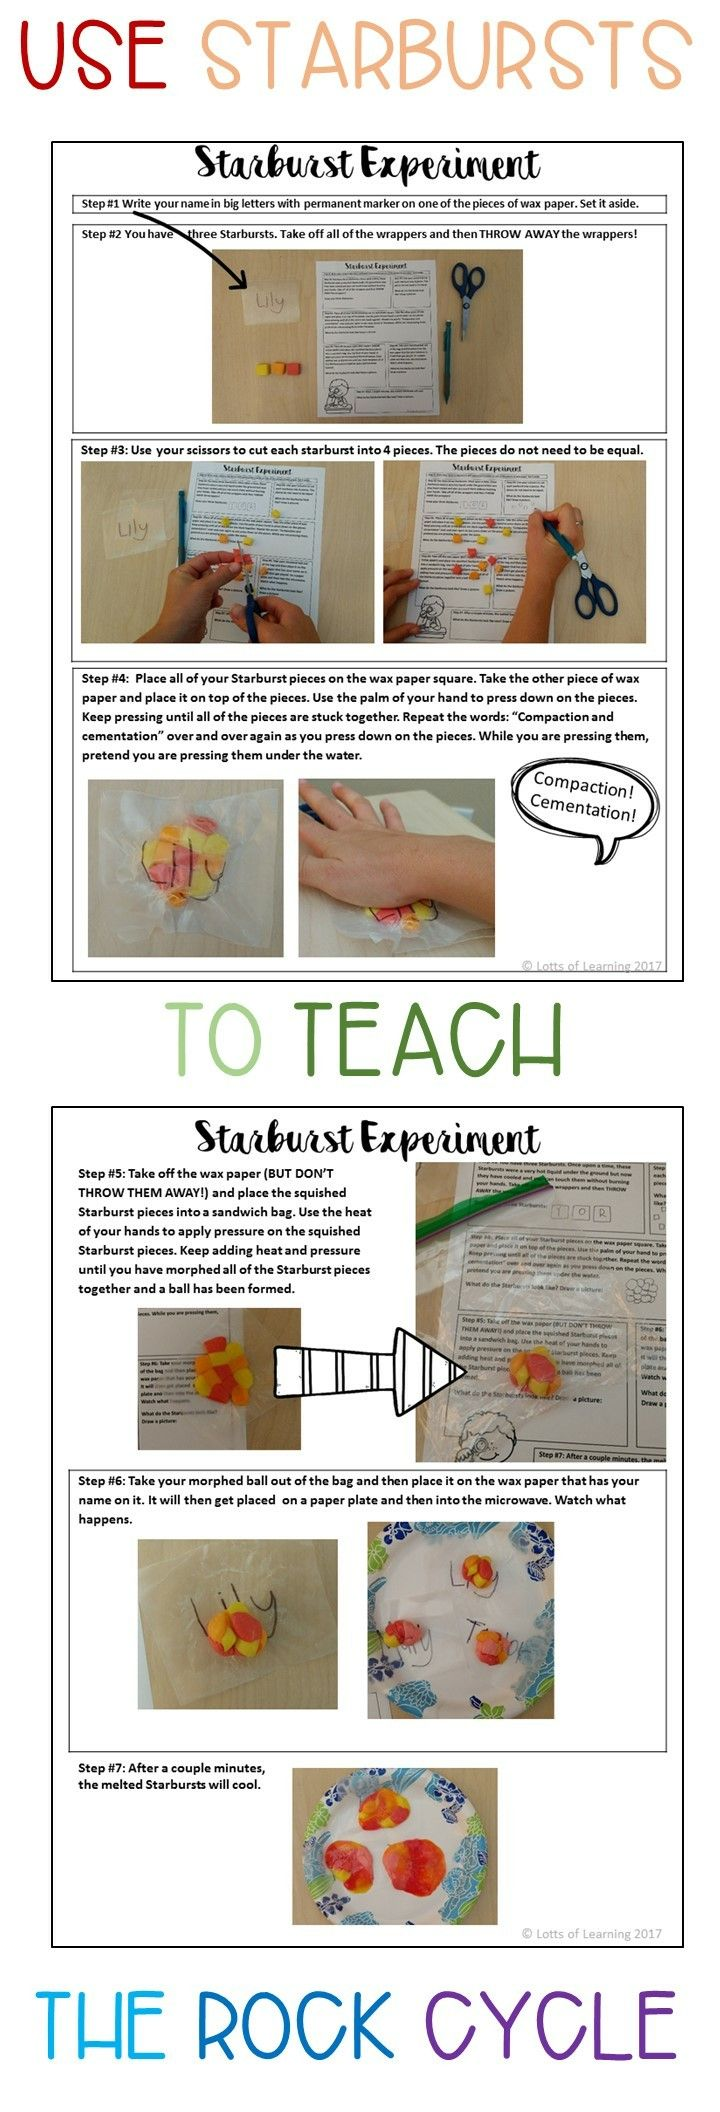 Rock Cycle Lesson With Starbursts Hands On Homeschool Approved Rock Cycle Middle School Science Experiments School Science Experiments